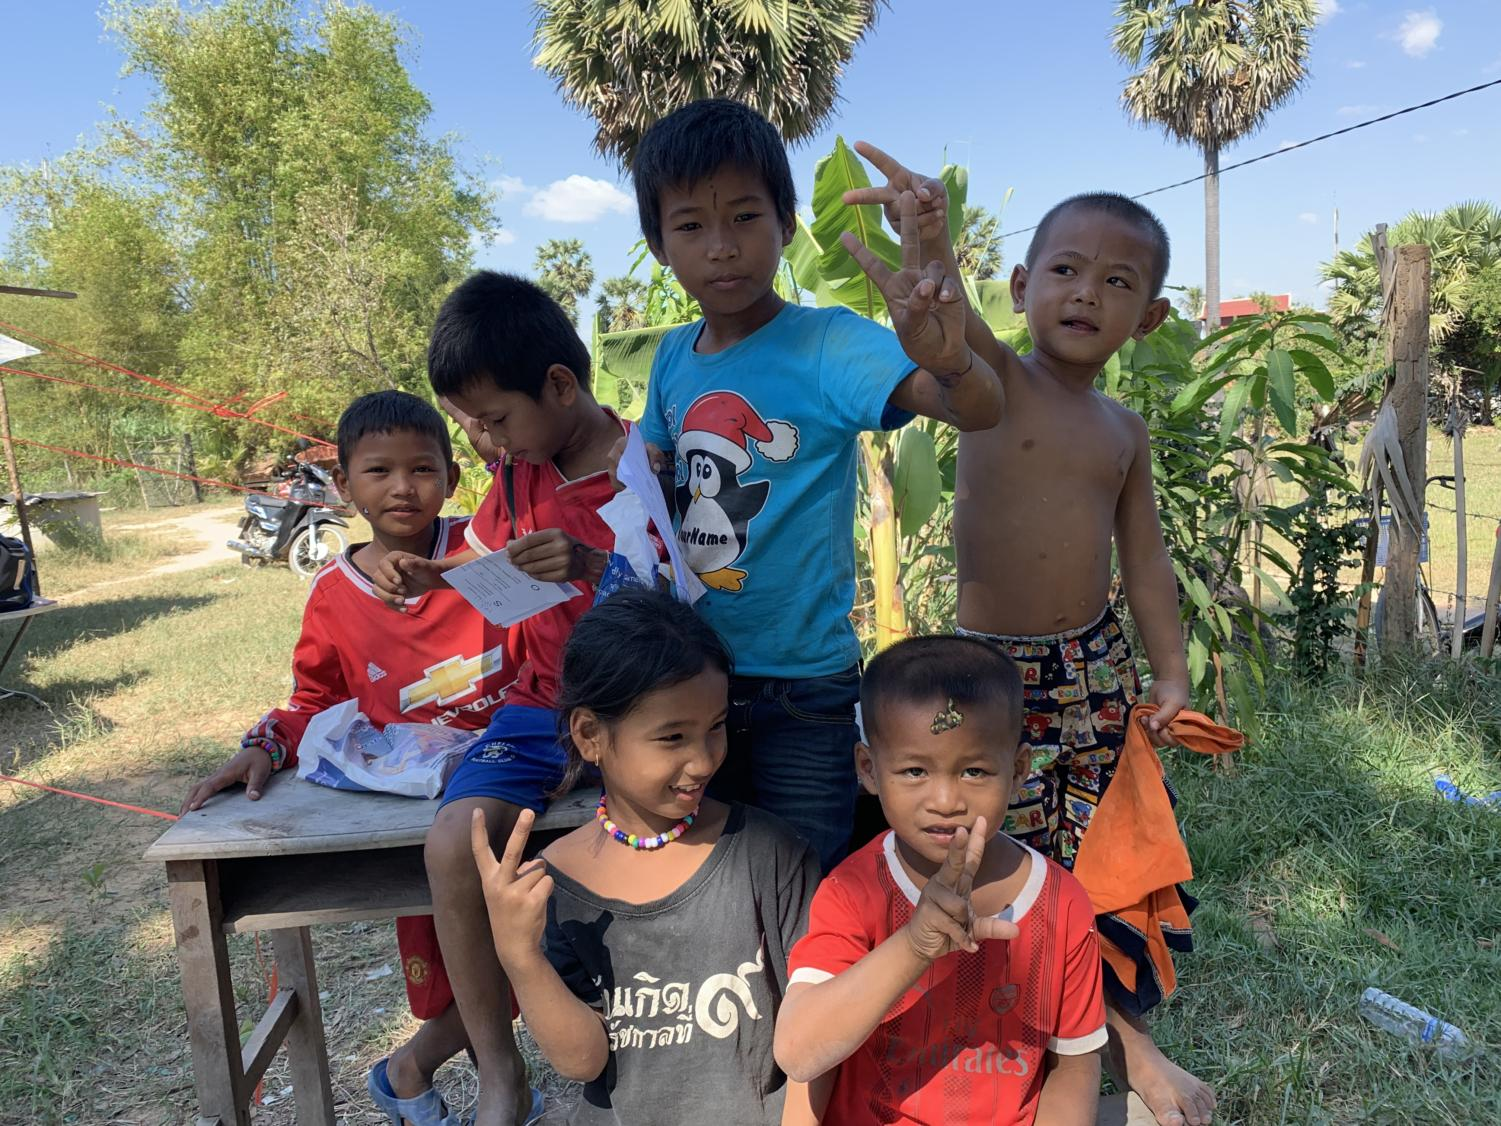 Cambodian+children+pose+for+a+silly+picture.